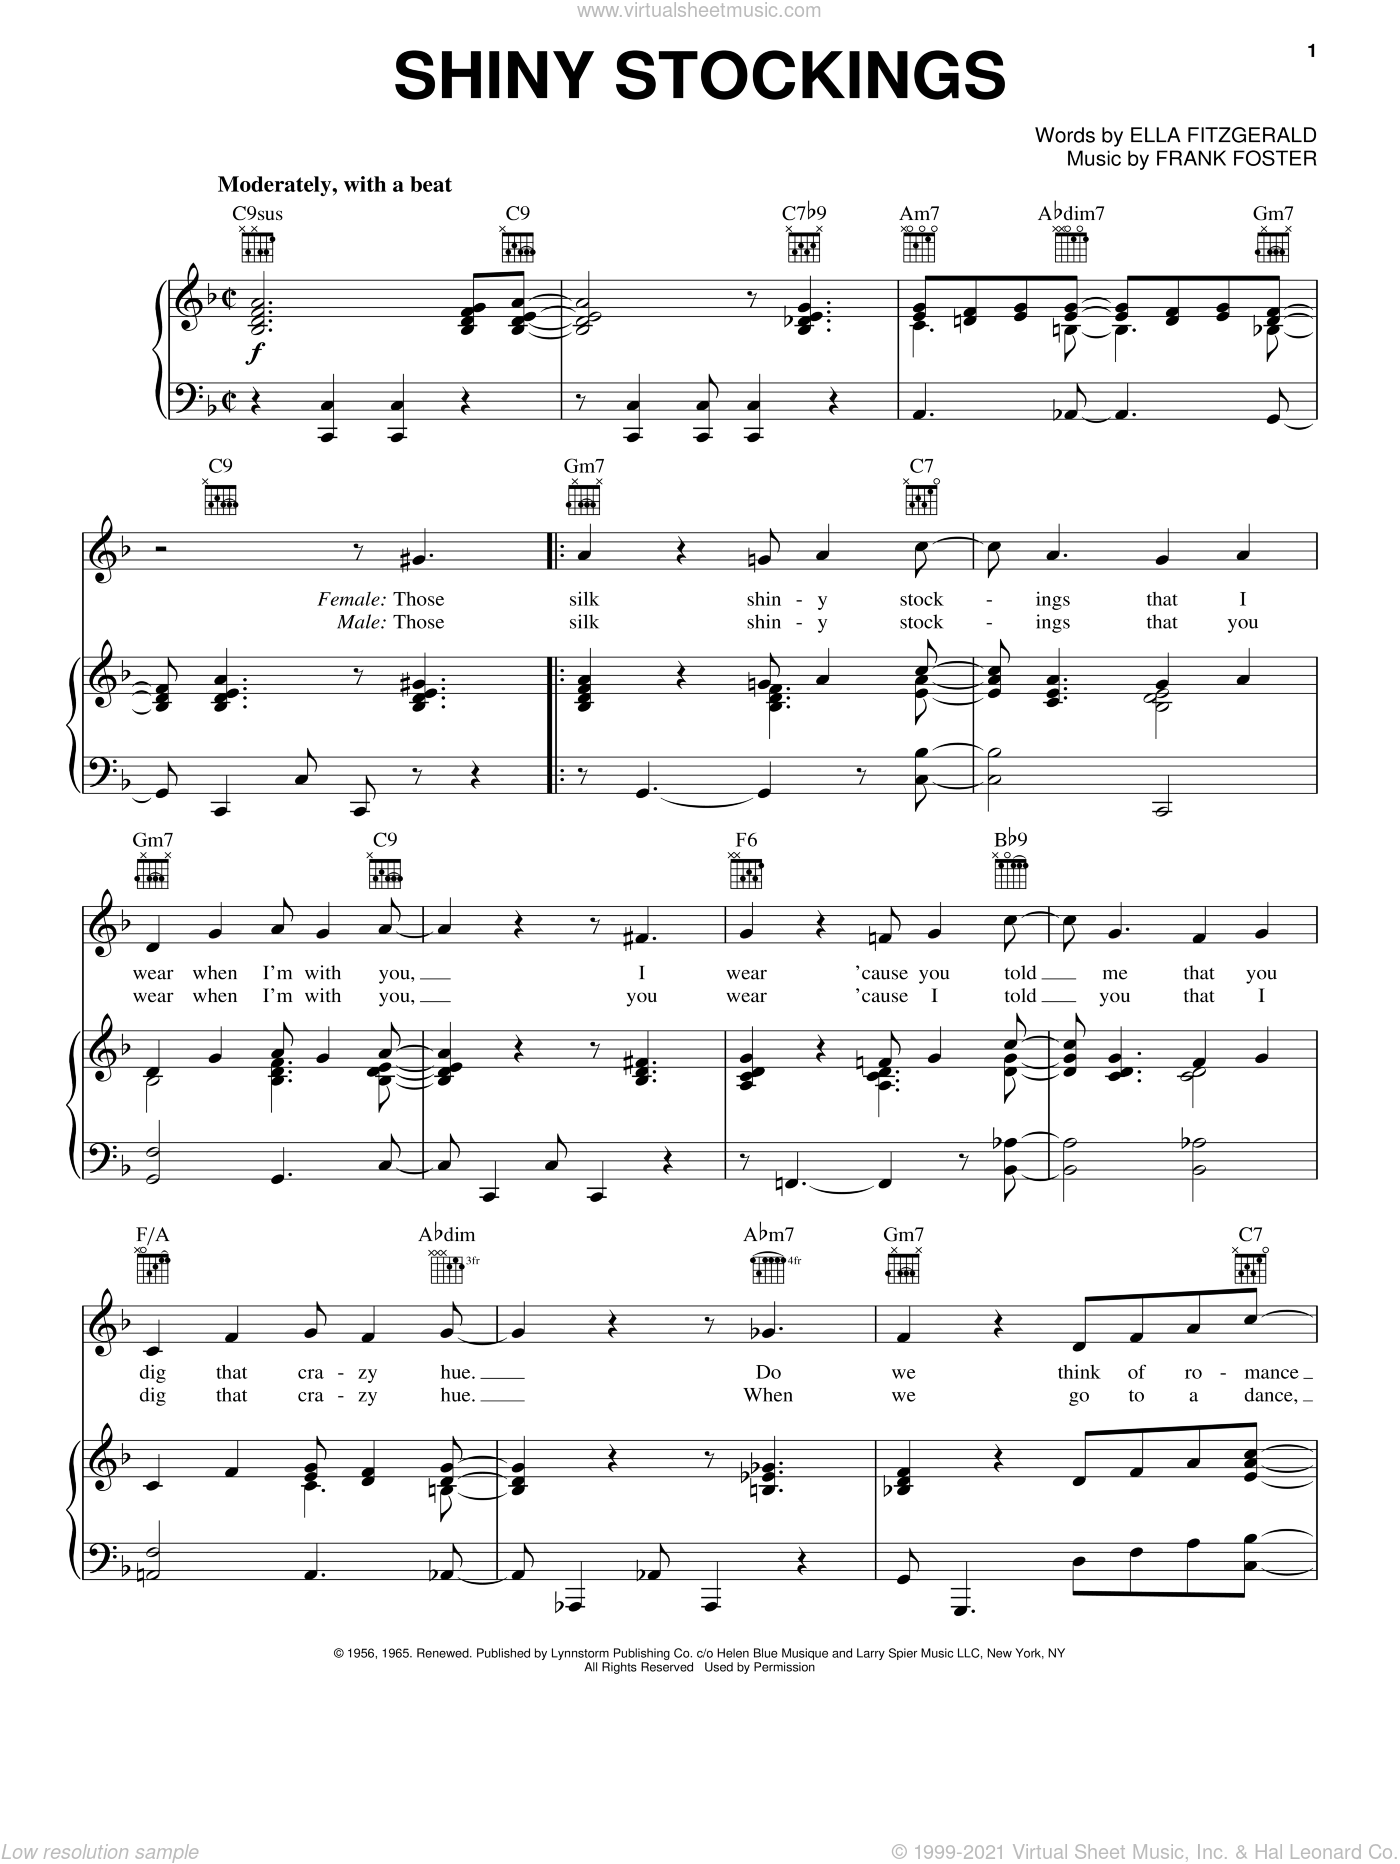 Shiny Stockings sheet music for voice, piano or guitar by Ella Fitzgerald. Score Image Preview.